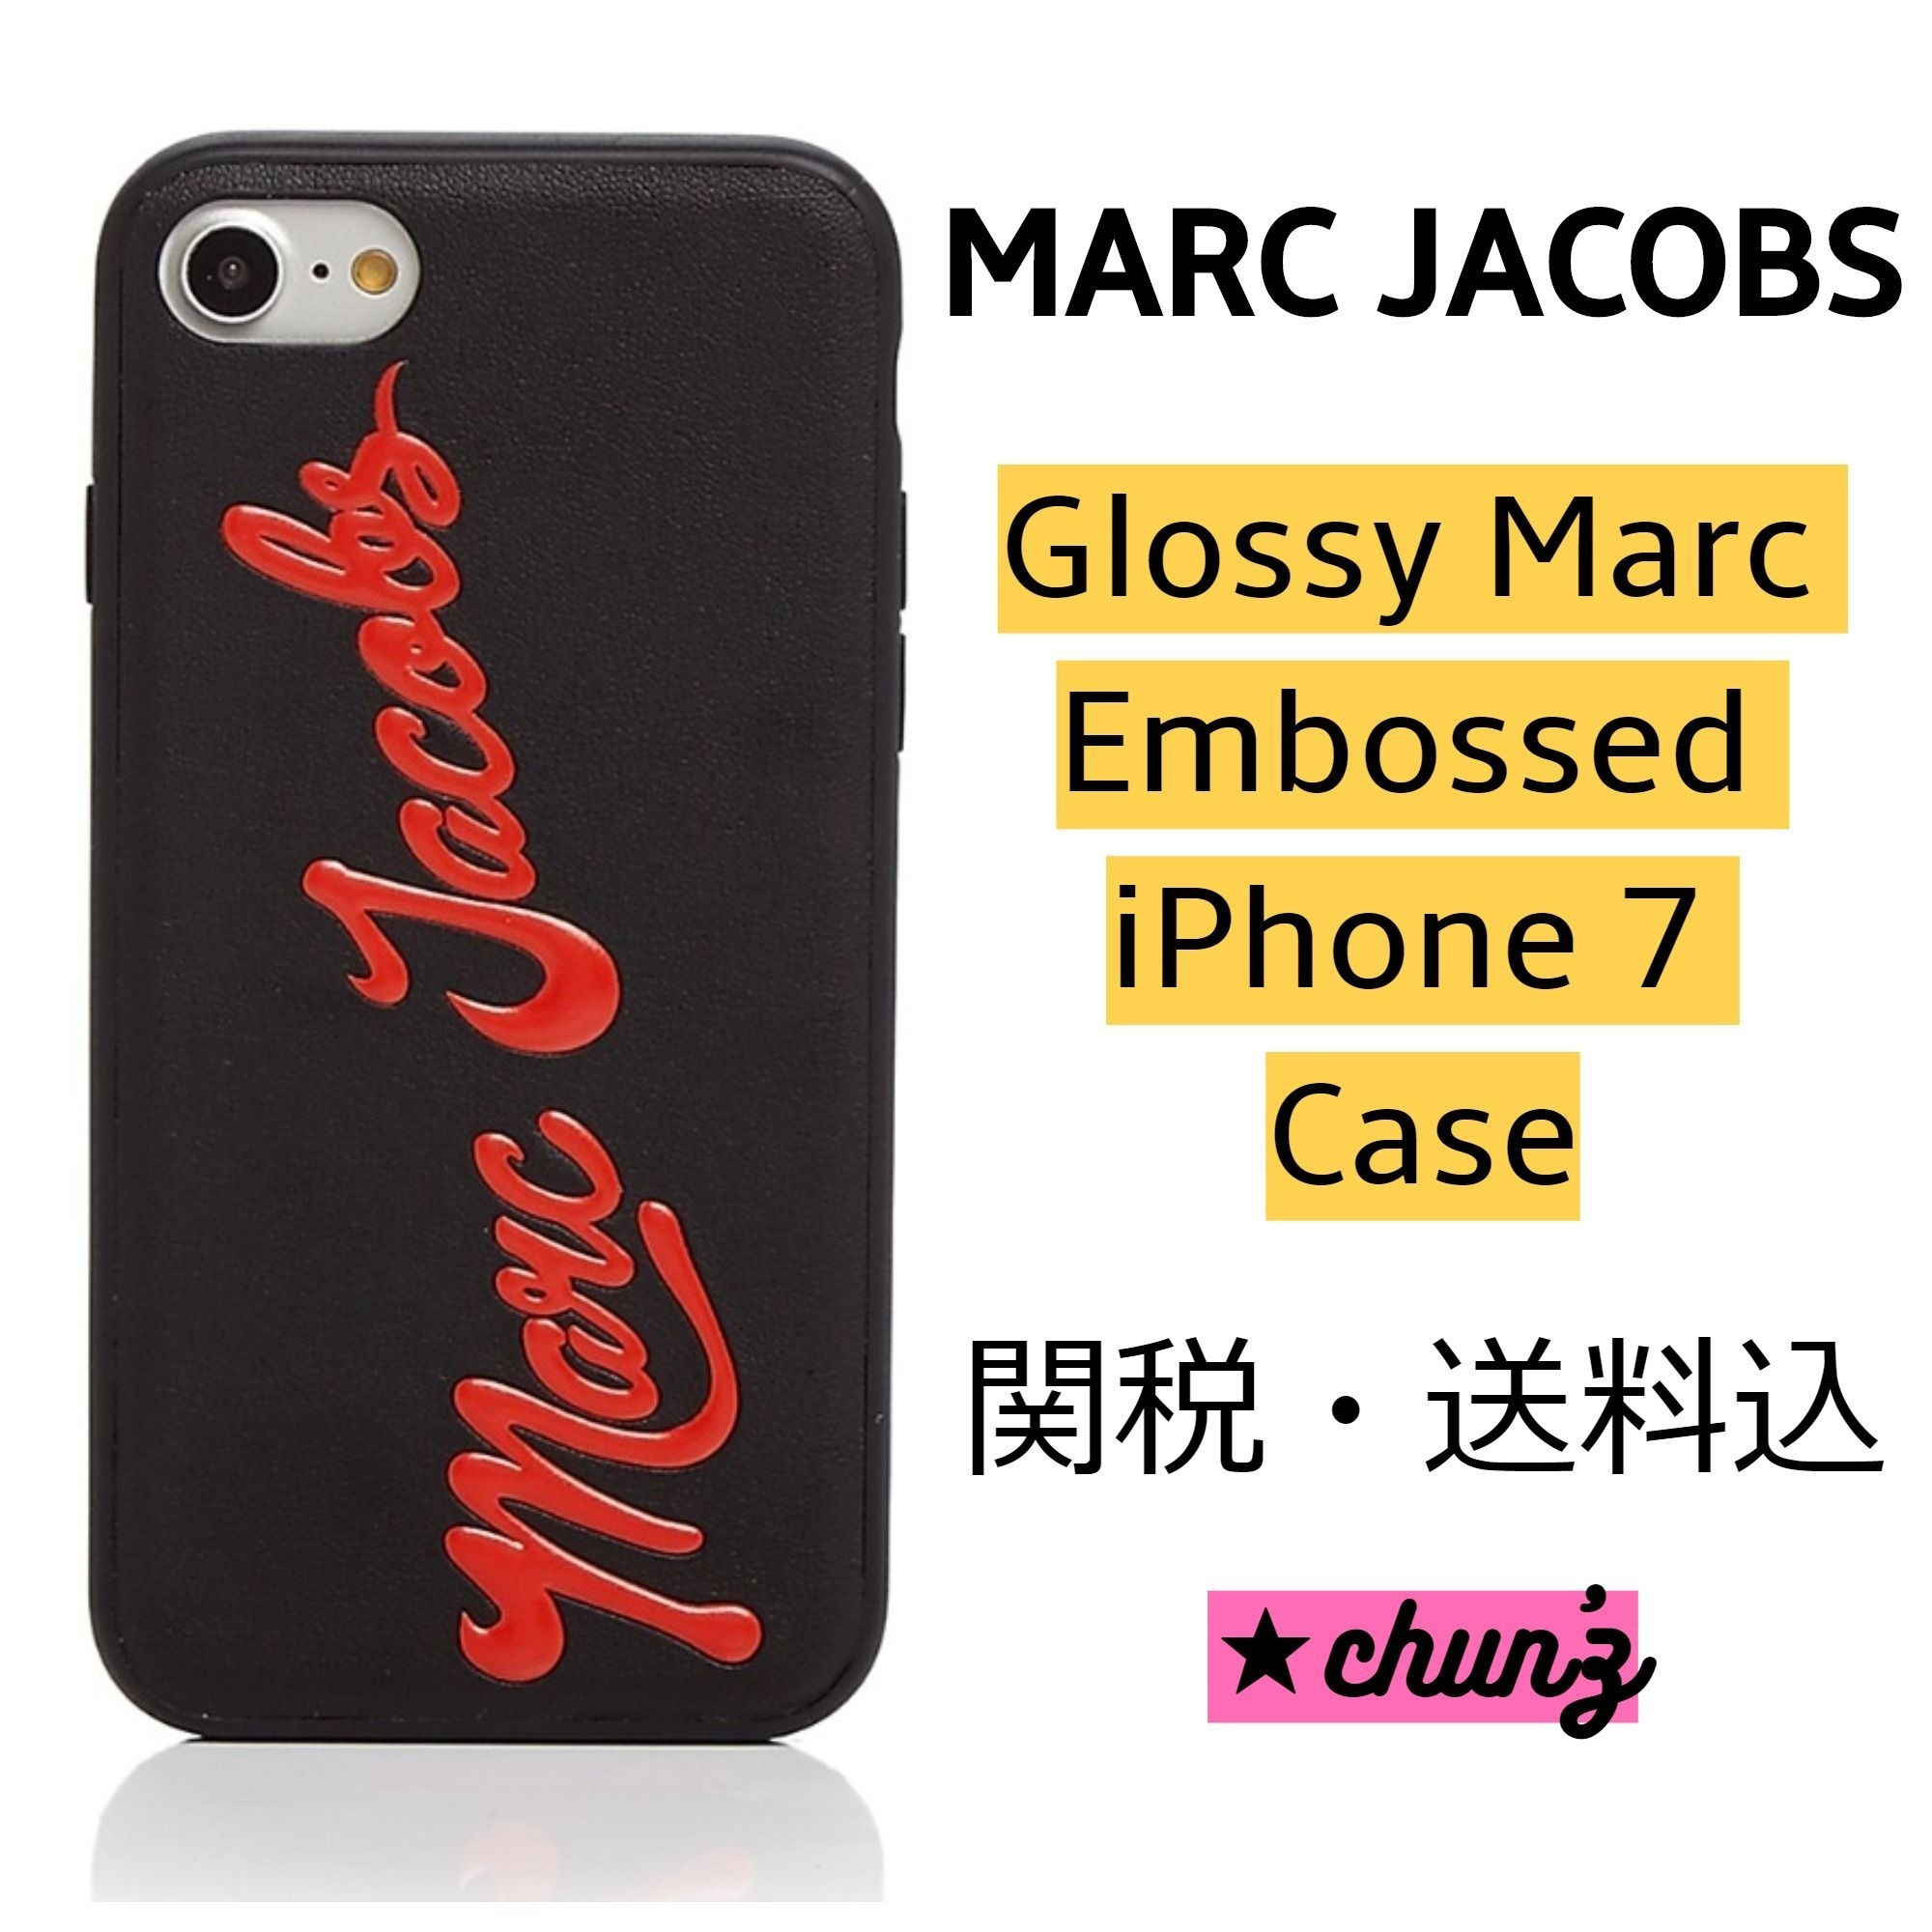 MARC JACOBS マークジェイコブス ★ iphone7 光沢ロゴ ケース